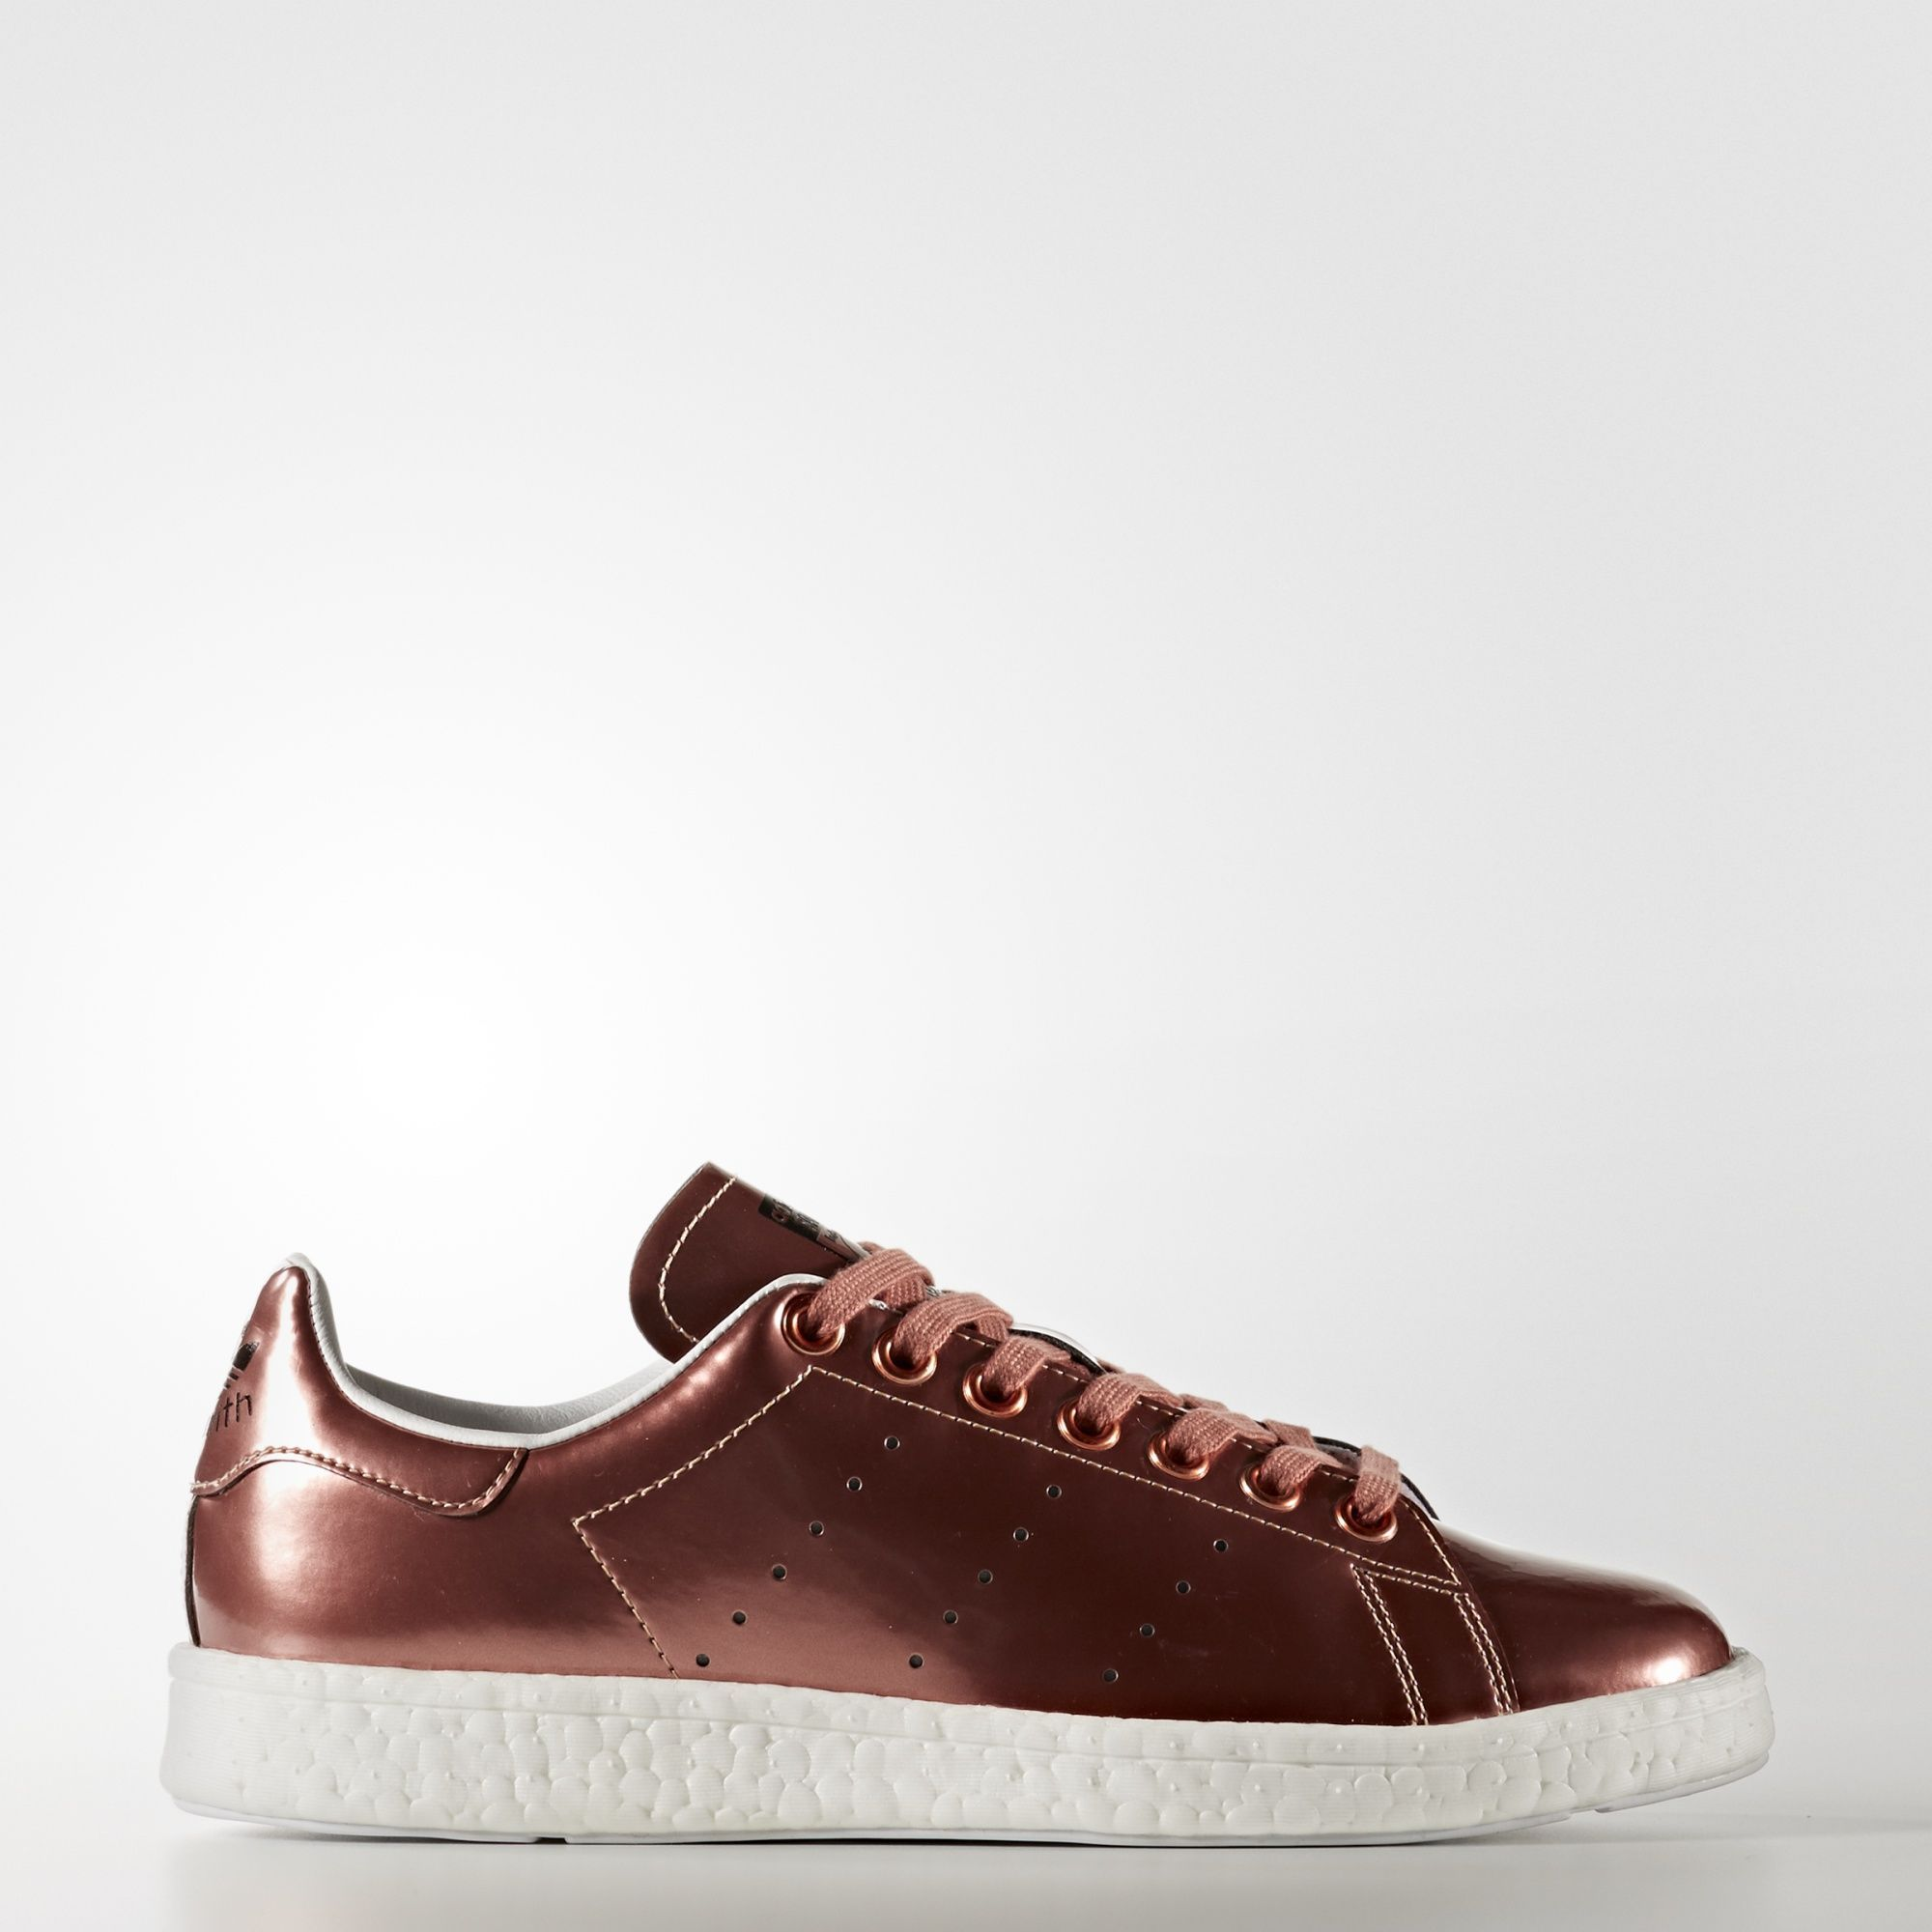 adidas - Zapatillas Originals STAN SMITH Boost Mujer  d01d1cc74fb